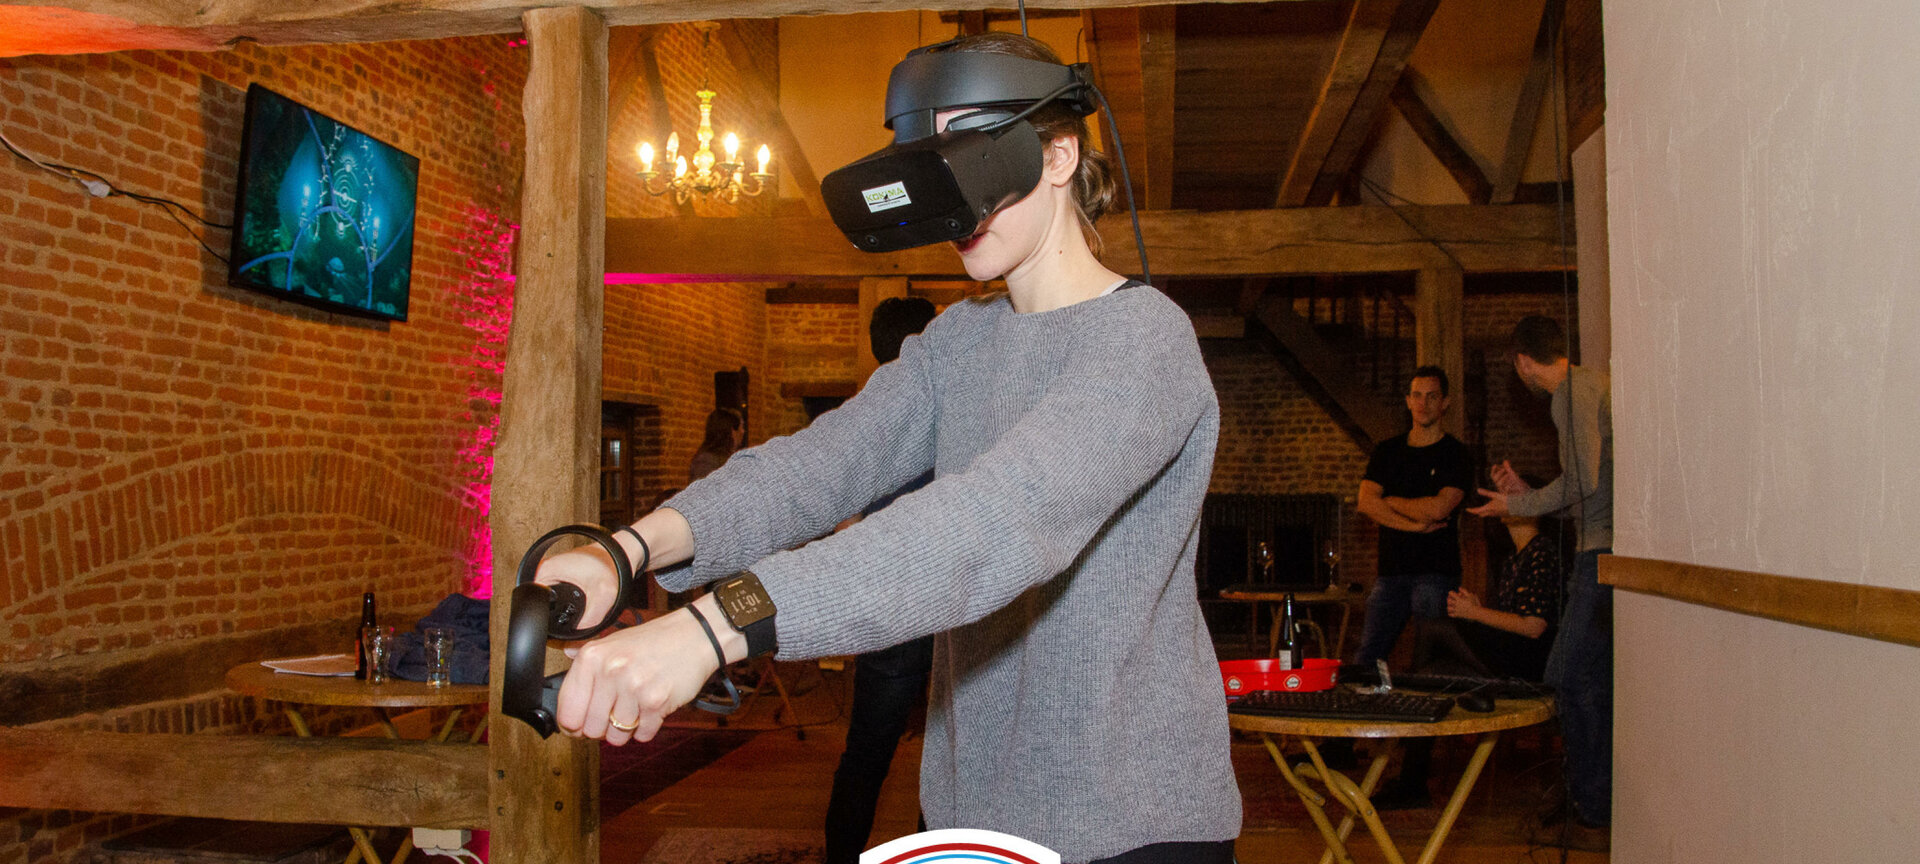 Virtual Reality Center - Virtual Reality in actie